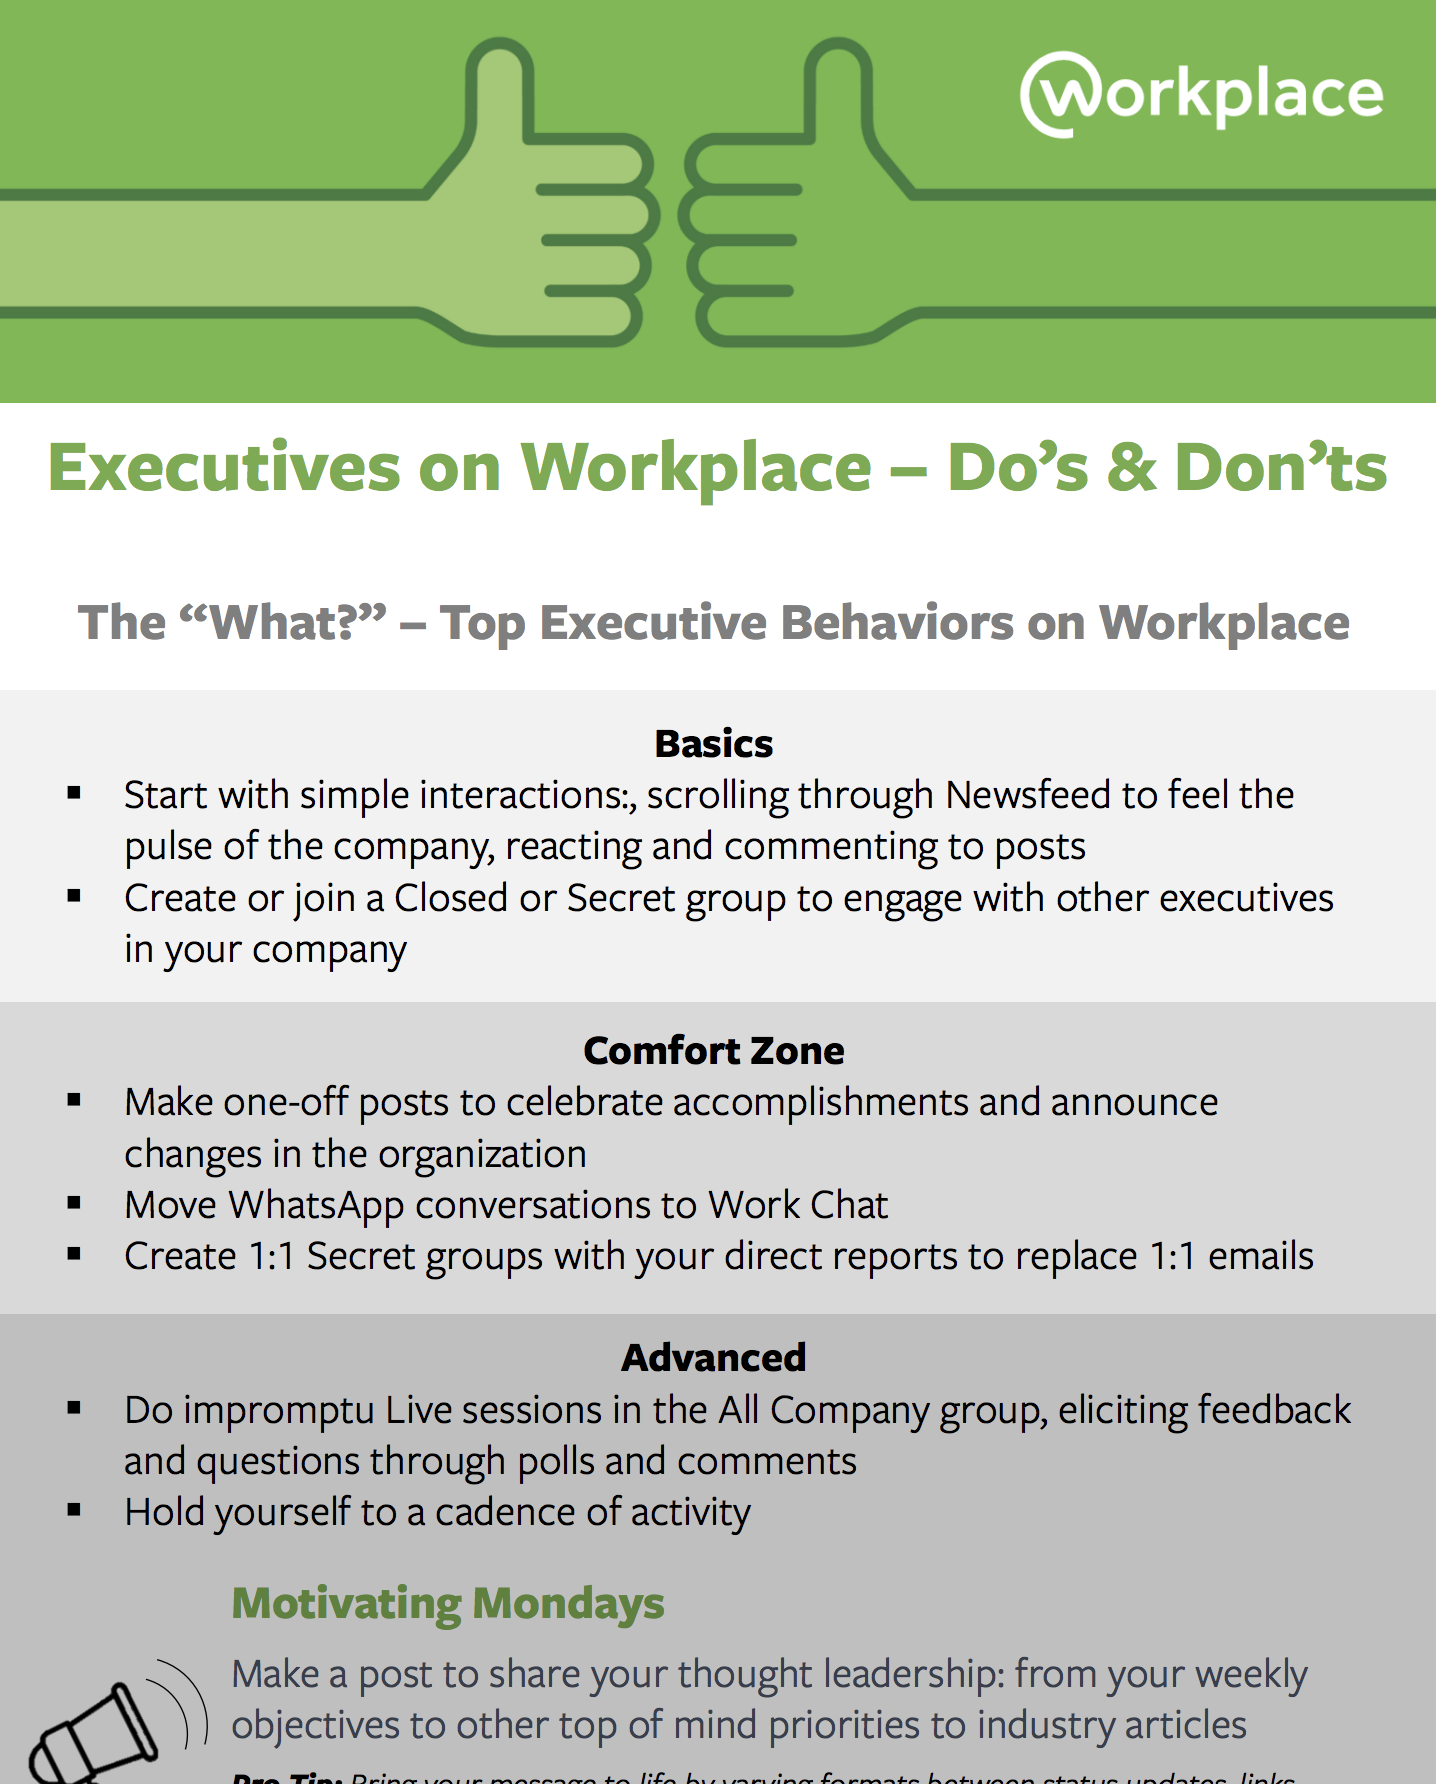 Workplace Do's and Dont's whitepaper.png